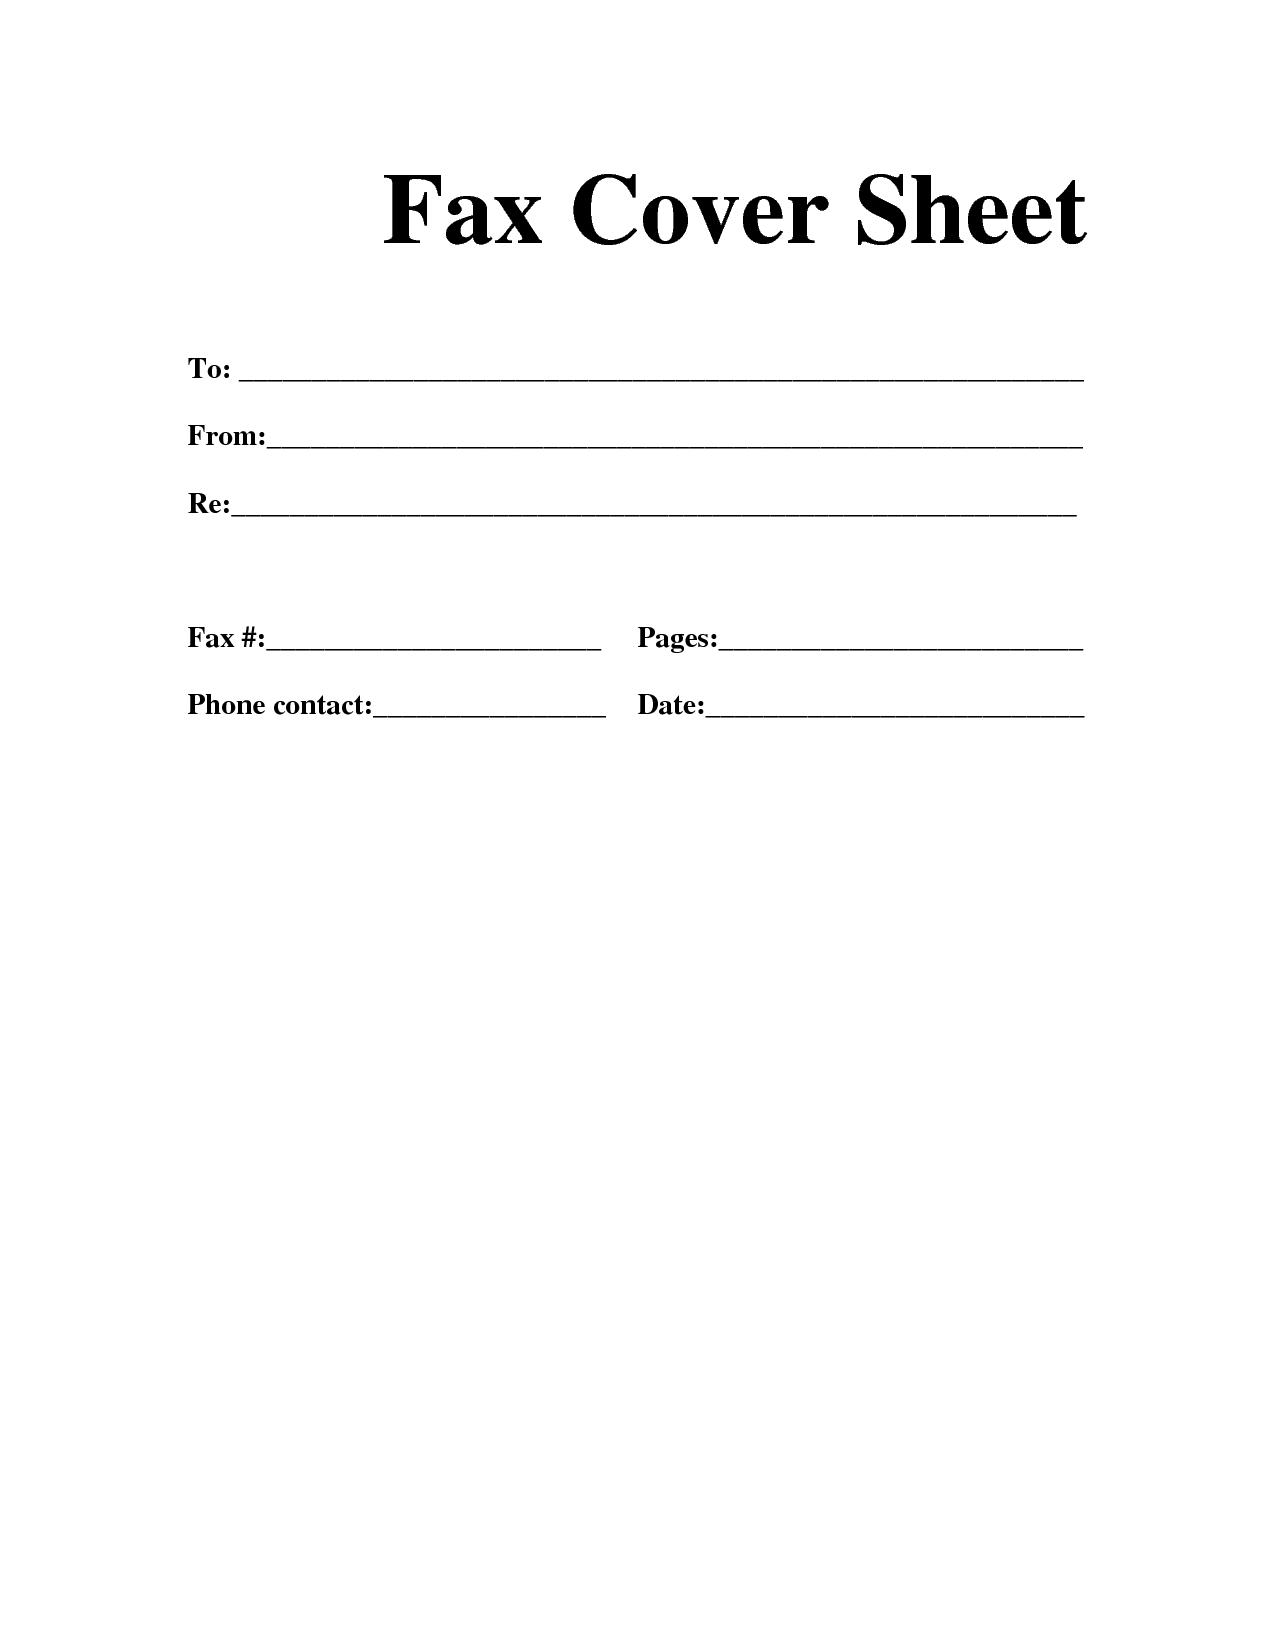 Free Fax Cover Sheet Templates